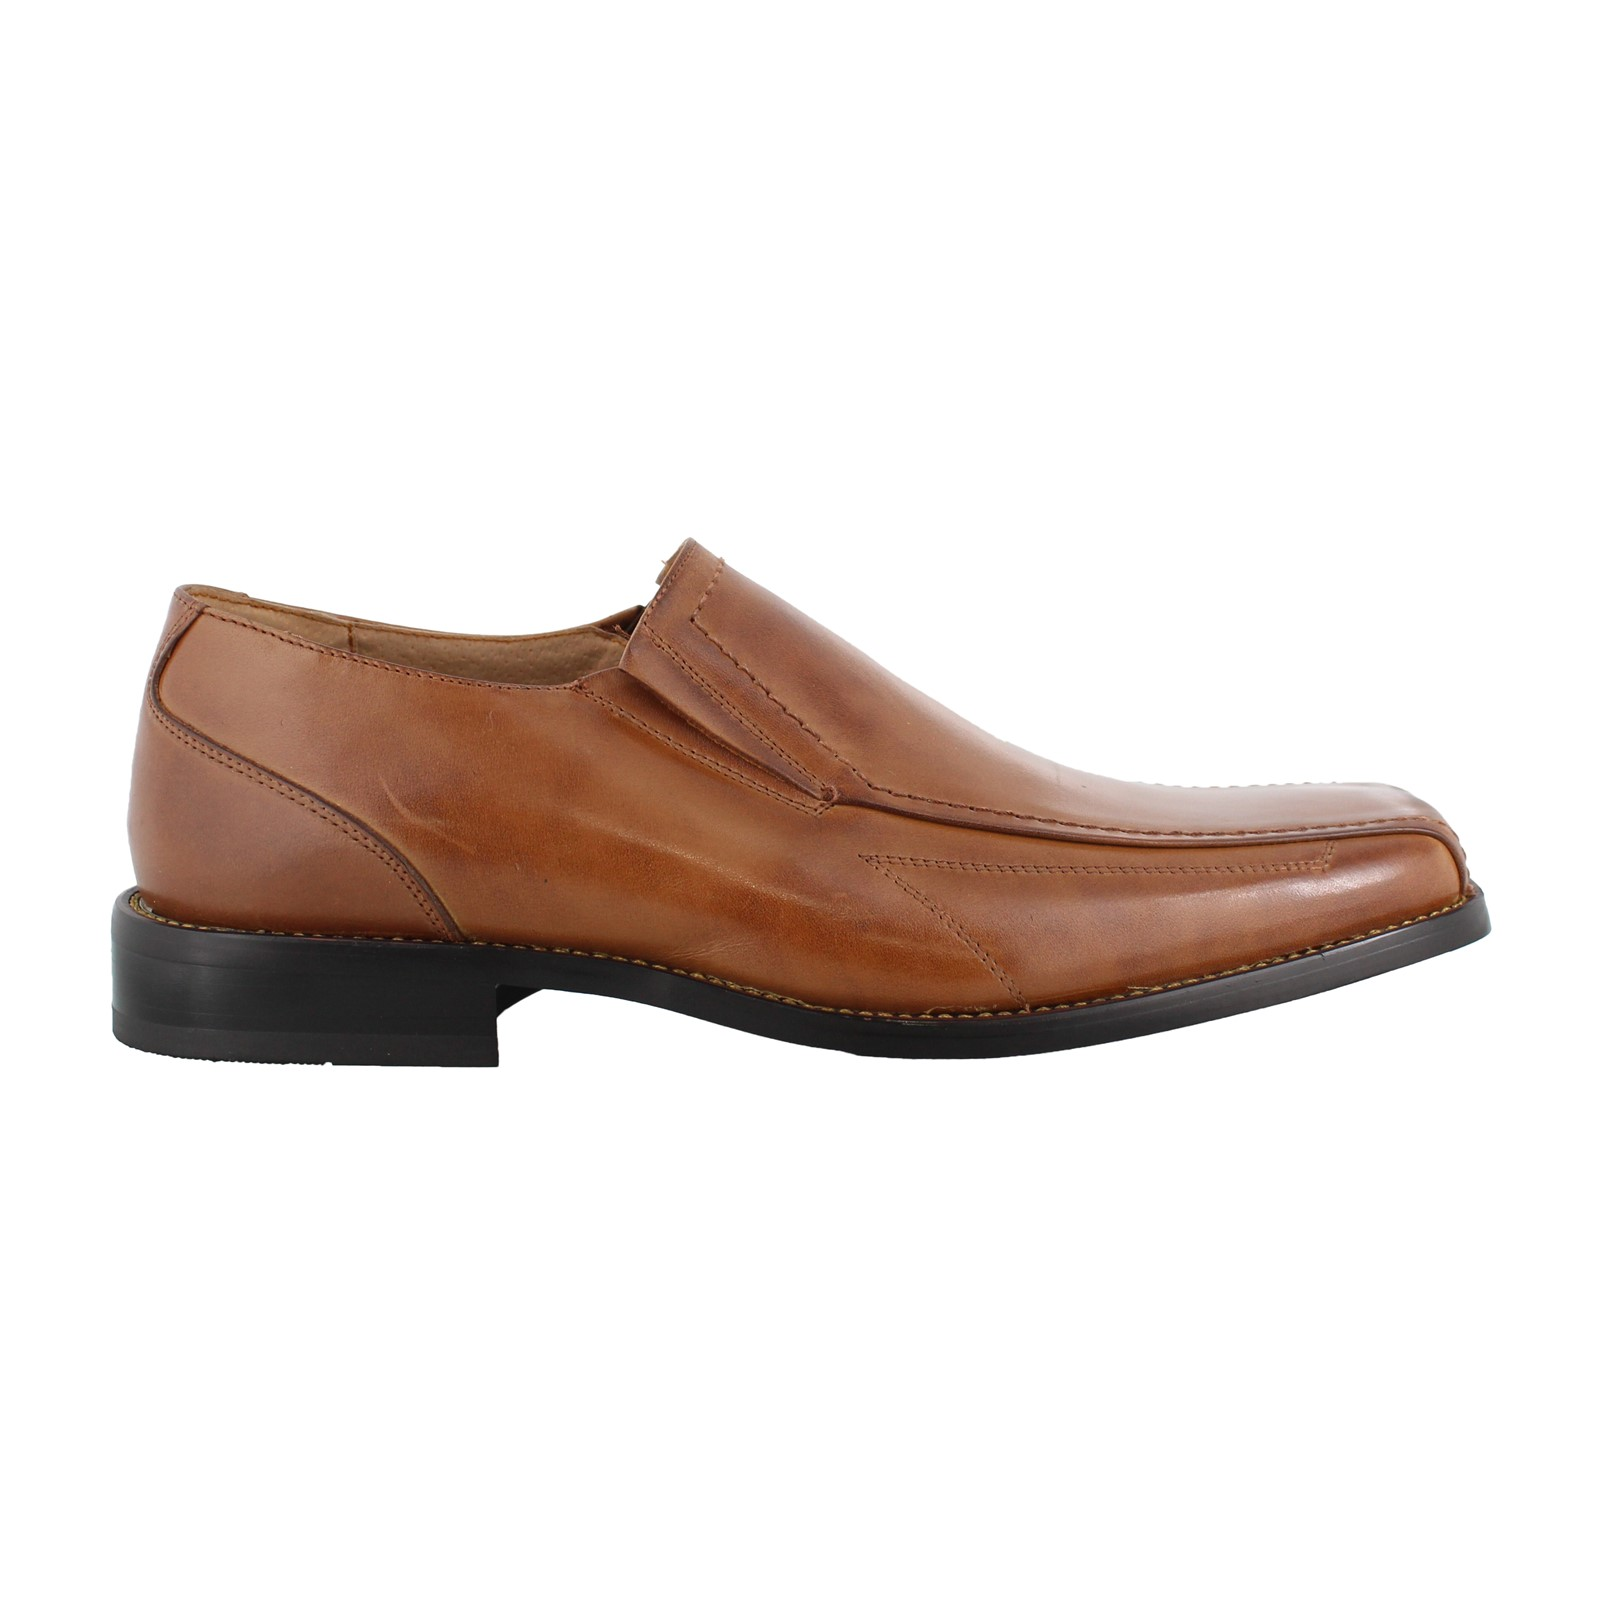 Men's Stacy Adams, Connelly Slip on Loafers